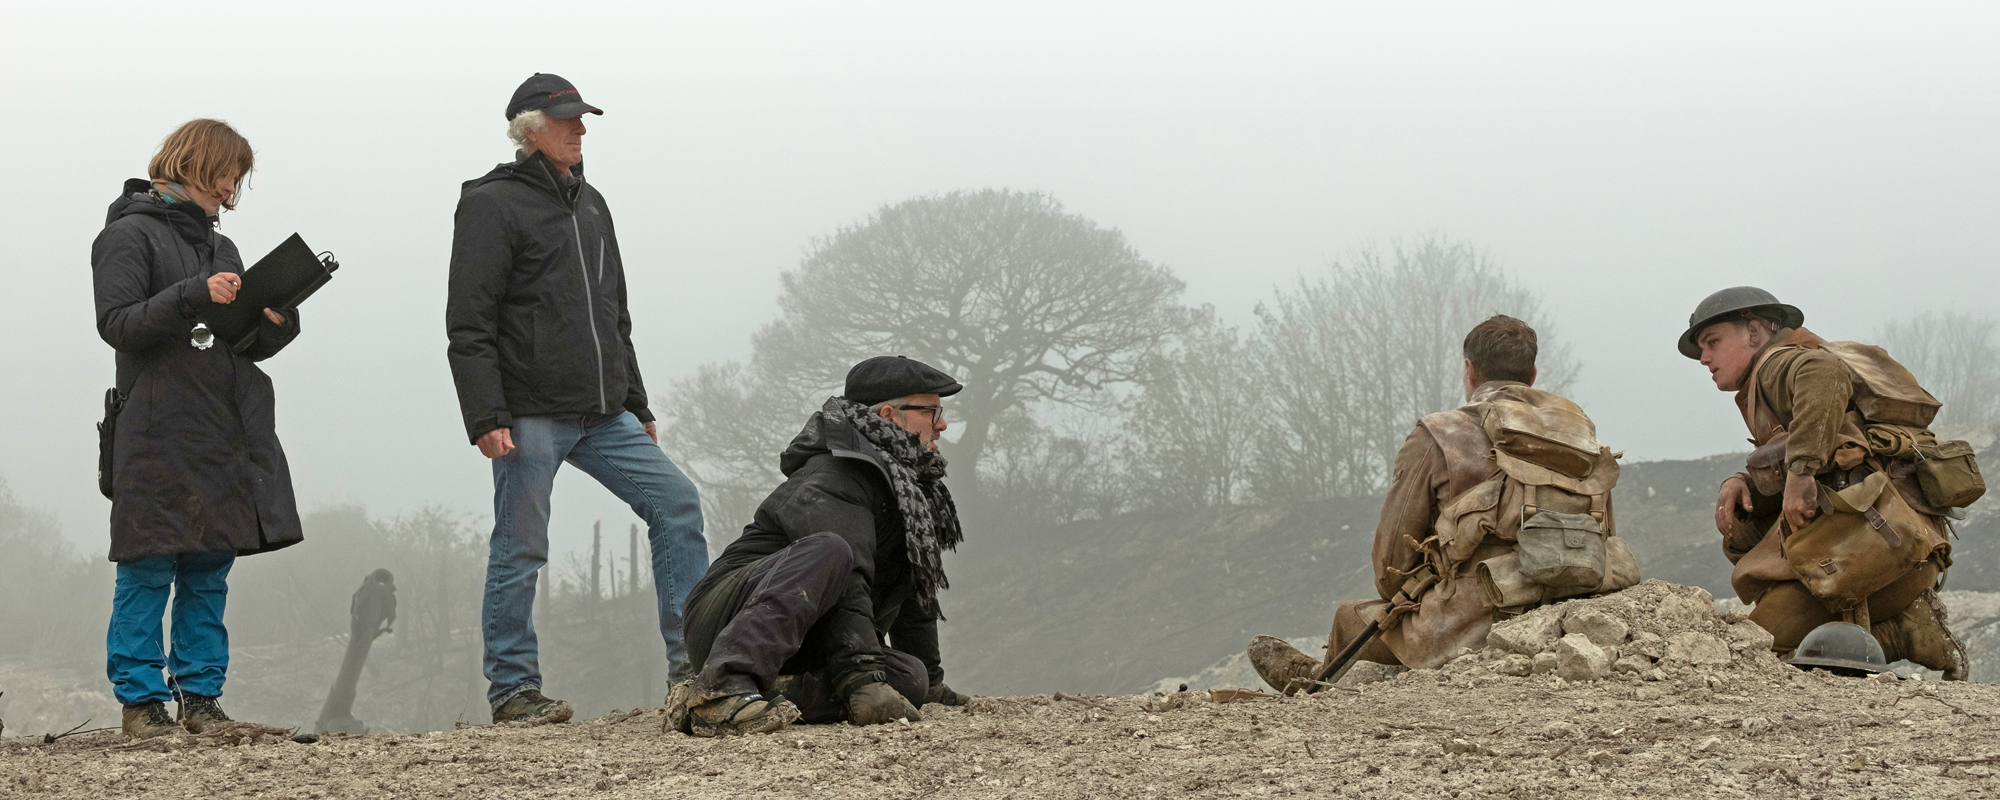 (from left) Script supervisor Nicoletta Mani, DP Roger Deakins, director/co-writer Sam Mendes, George MacKay as Schofield and Dean-Charles Chapman as Black